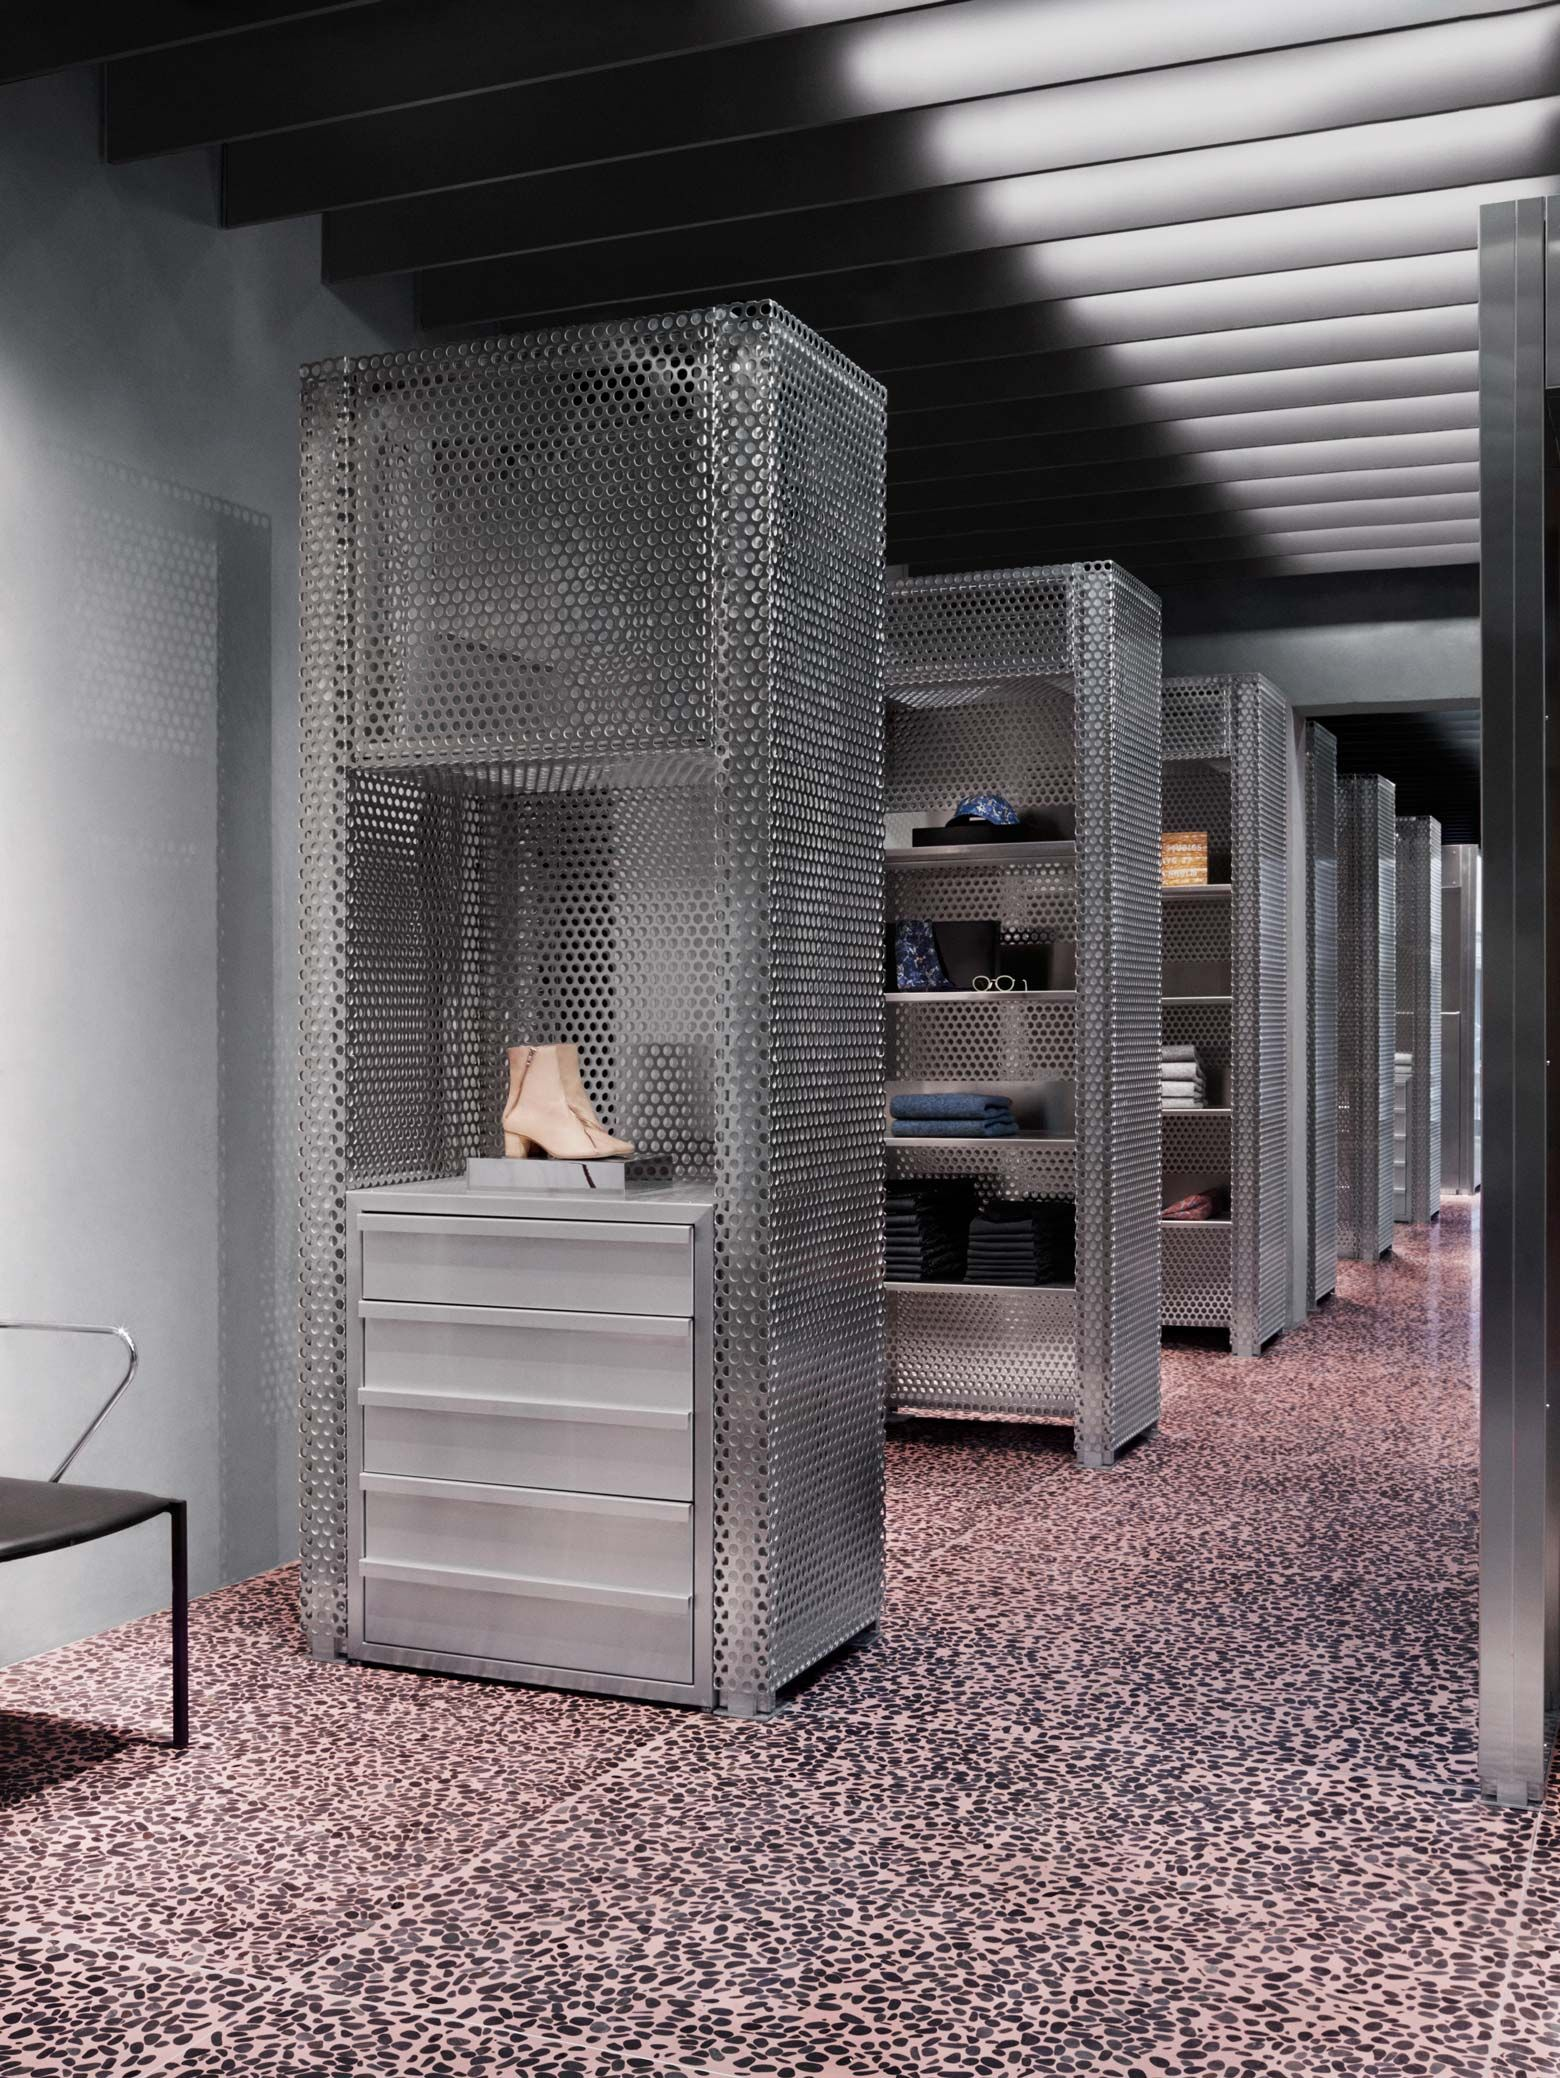 Acne studios store locations find an acne studios store near you interior fragments for Find an interior designer near me